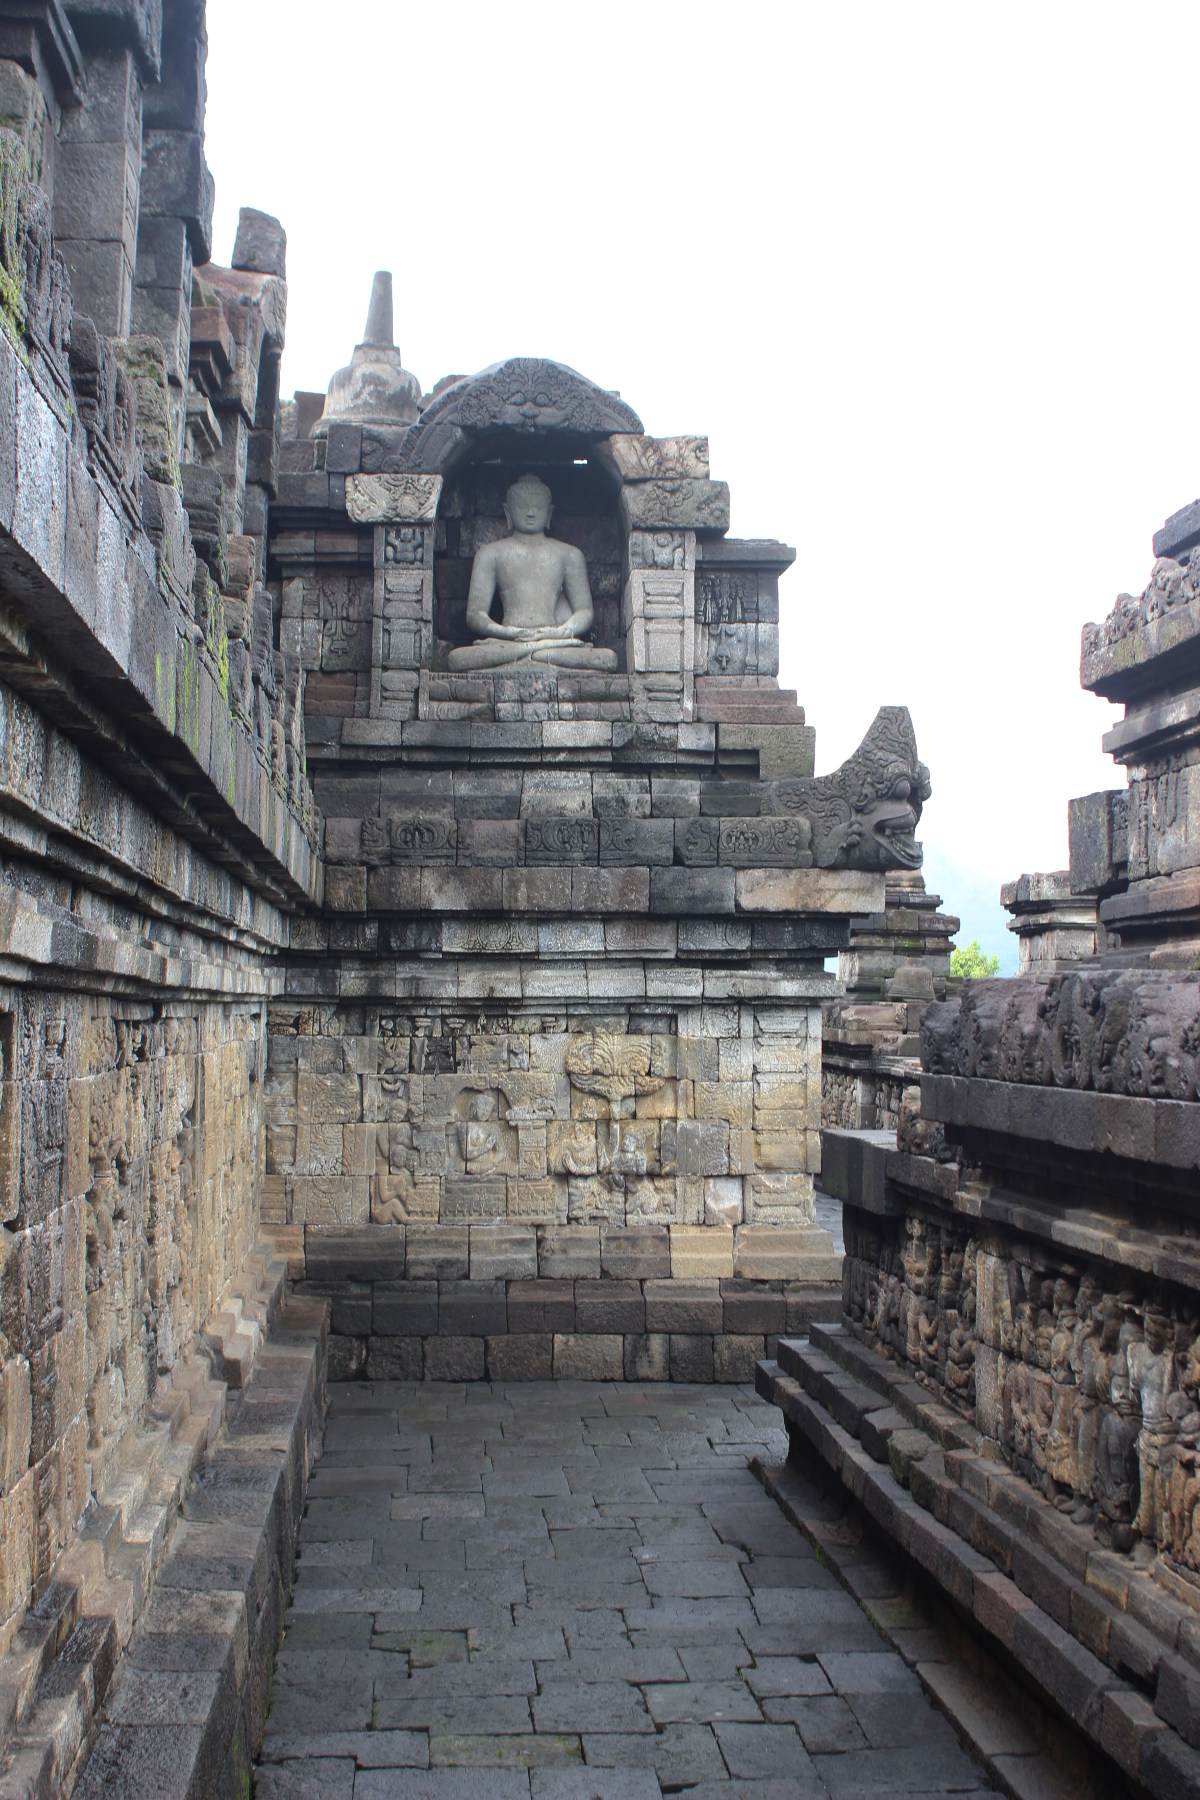 Buddha statue and sculpted walls